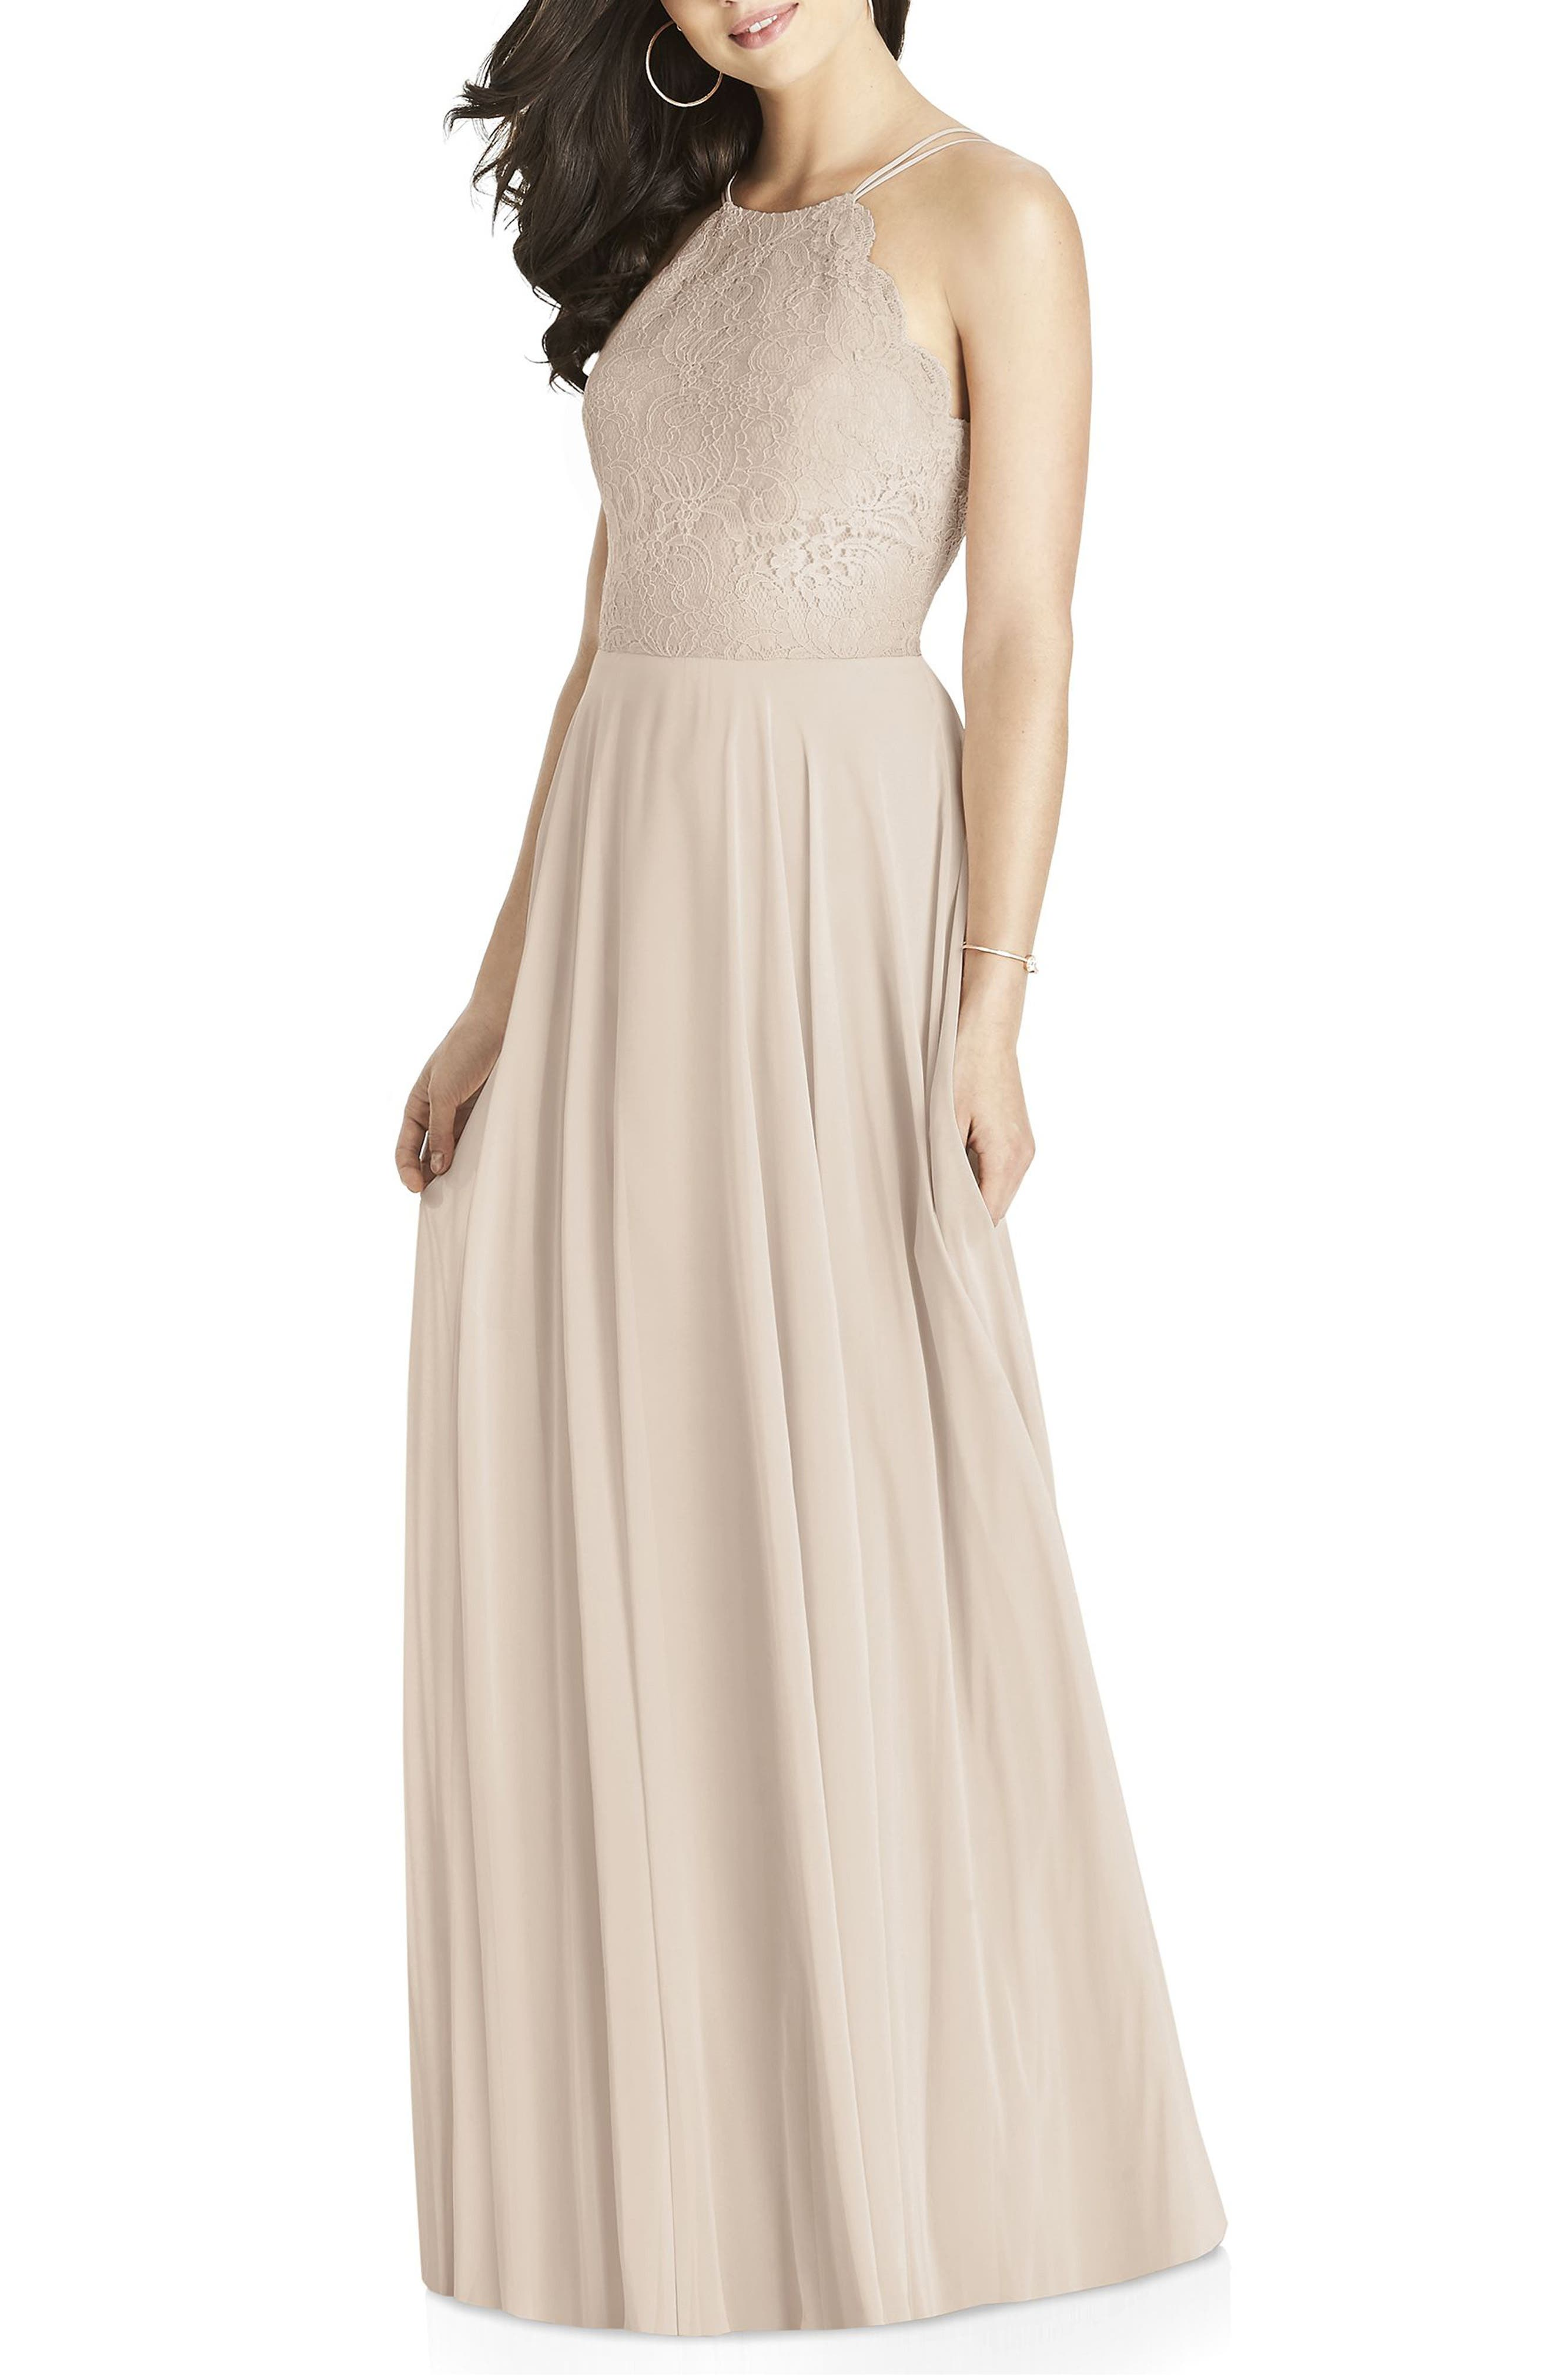 Dessy Collection Lace & Chiffon Halter Gown, Beige